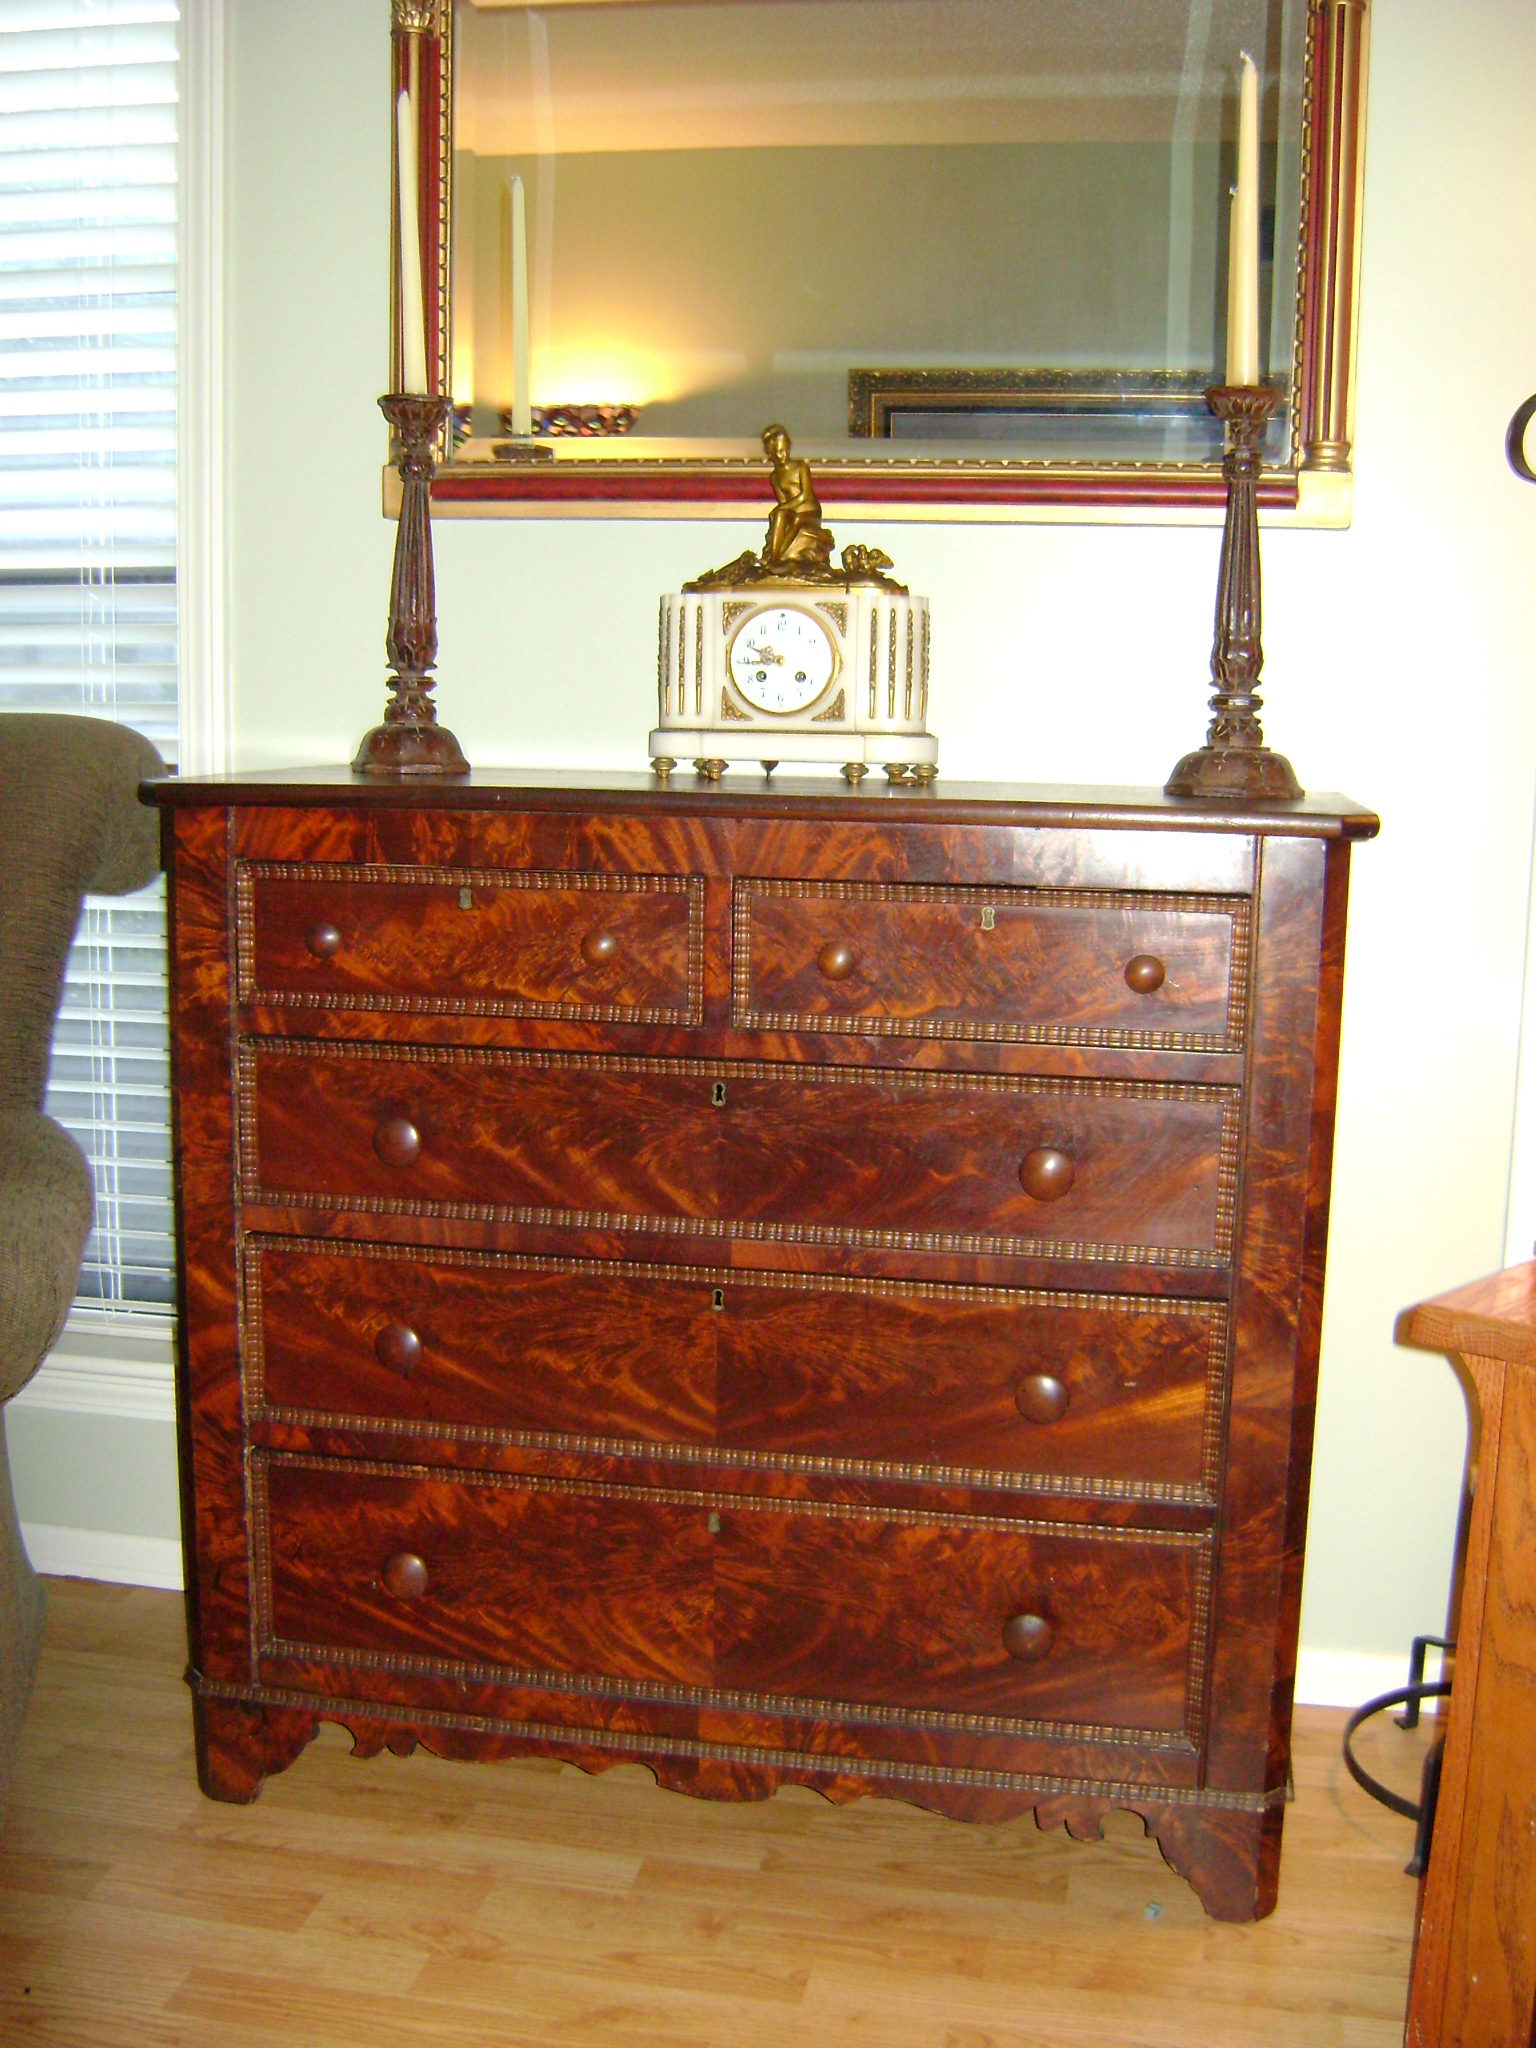 With 20+ years of experience in antiques, Copeland Estate sales has much  experience on the hundreds of sub-categories within this market. - Antique Furniture & Contents - Copeland Estate Sales